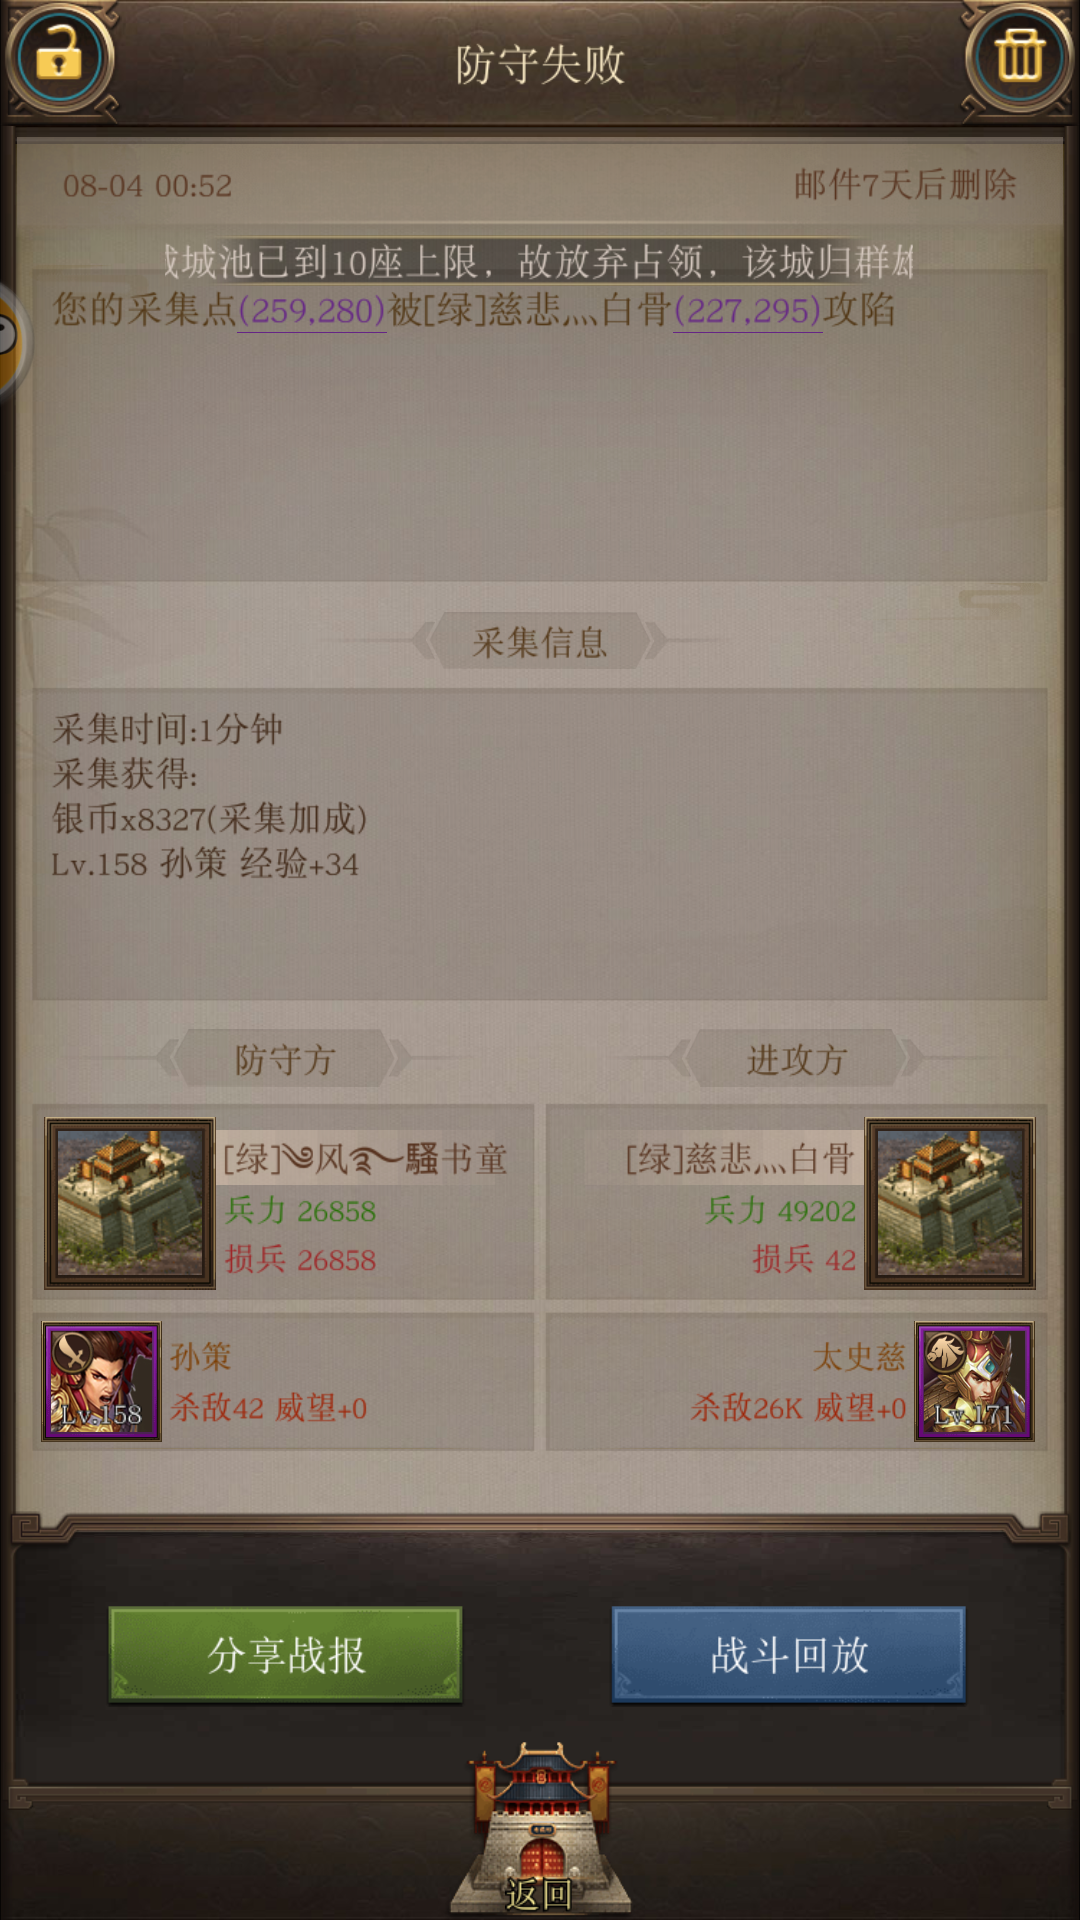 Screenshot_2019-08-04-01-11-15-011_com.juedigame.zhhzz.shoumeng.png